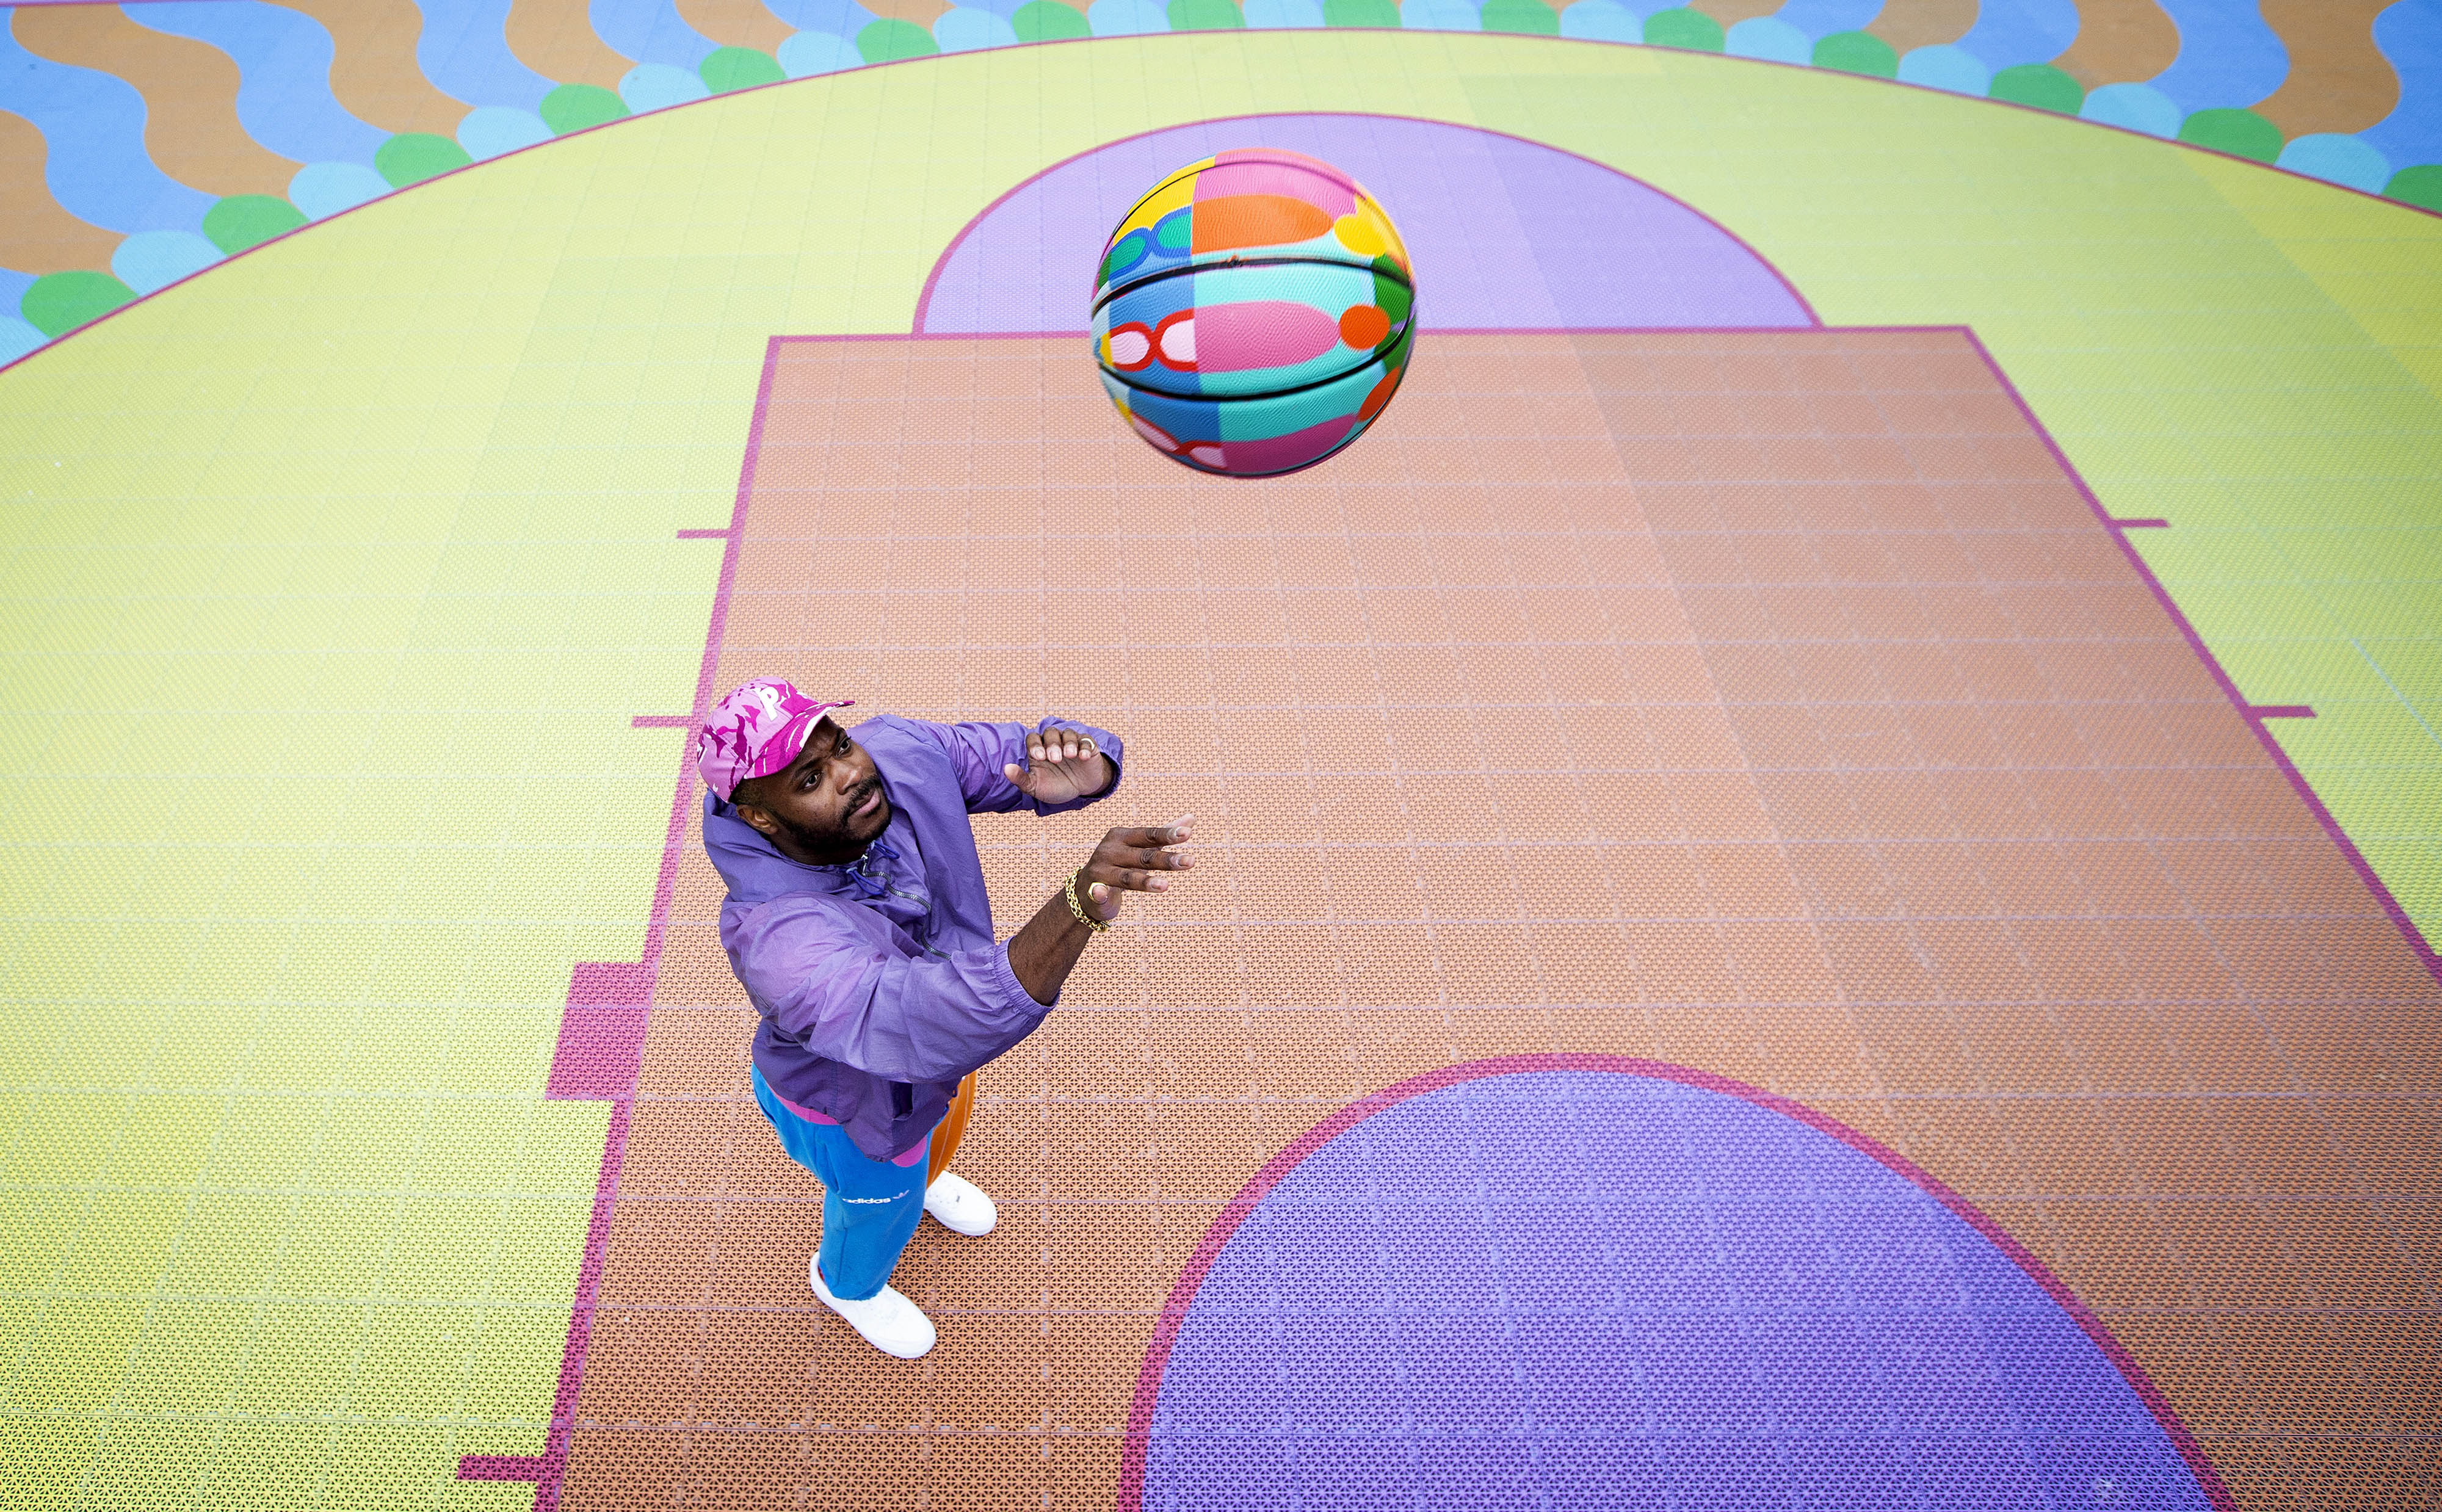 <p>EDITORIAL USE ONLY British-Nigerian artist, Yinka Ilori unveils an outdoor public basketball court, which he has designed, at Bank Street Park in Canary Wharf, London. Picture Date: Monday May 24, 2021.</p>